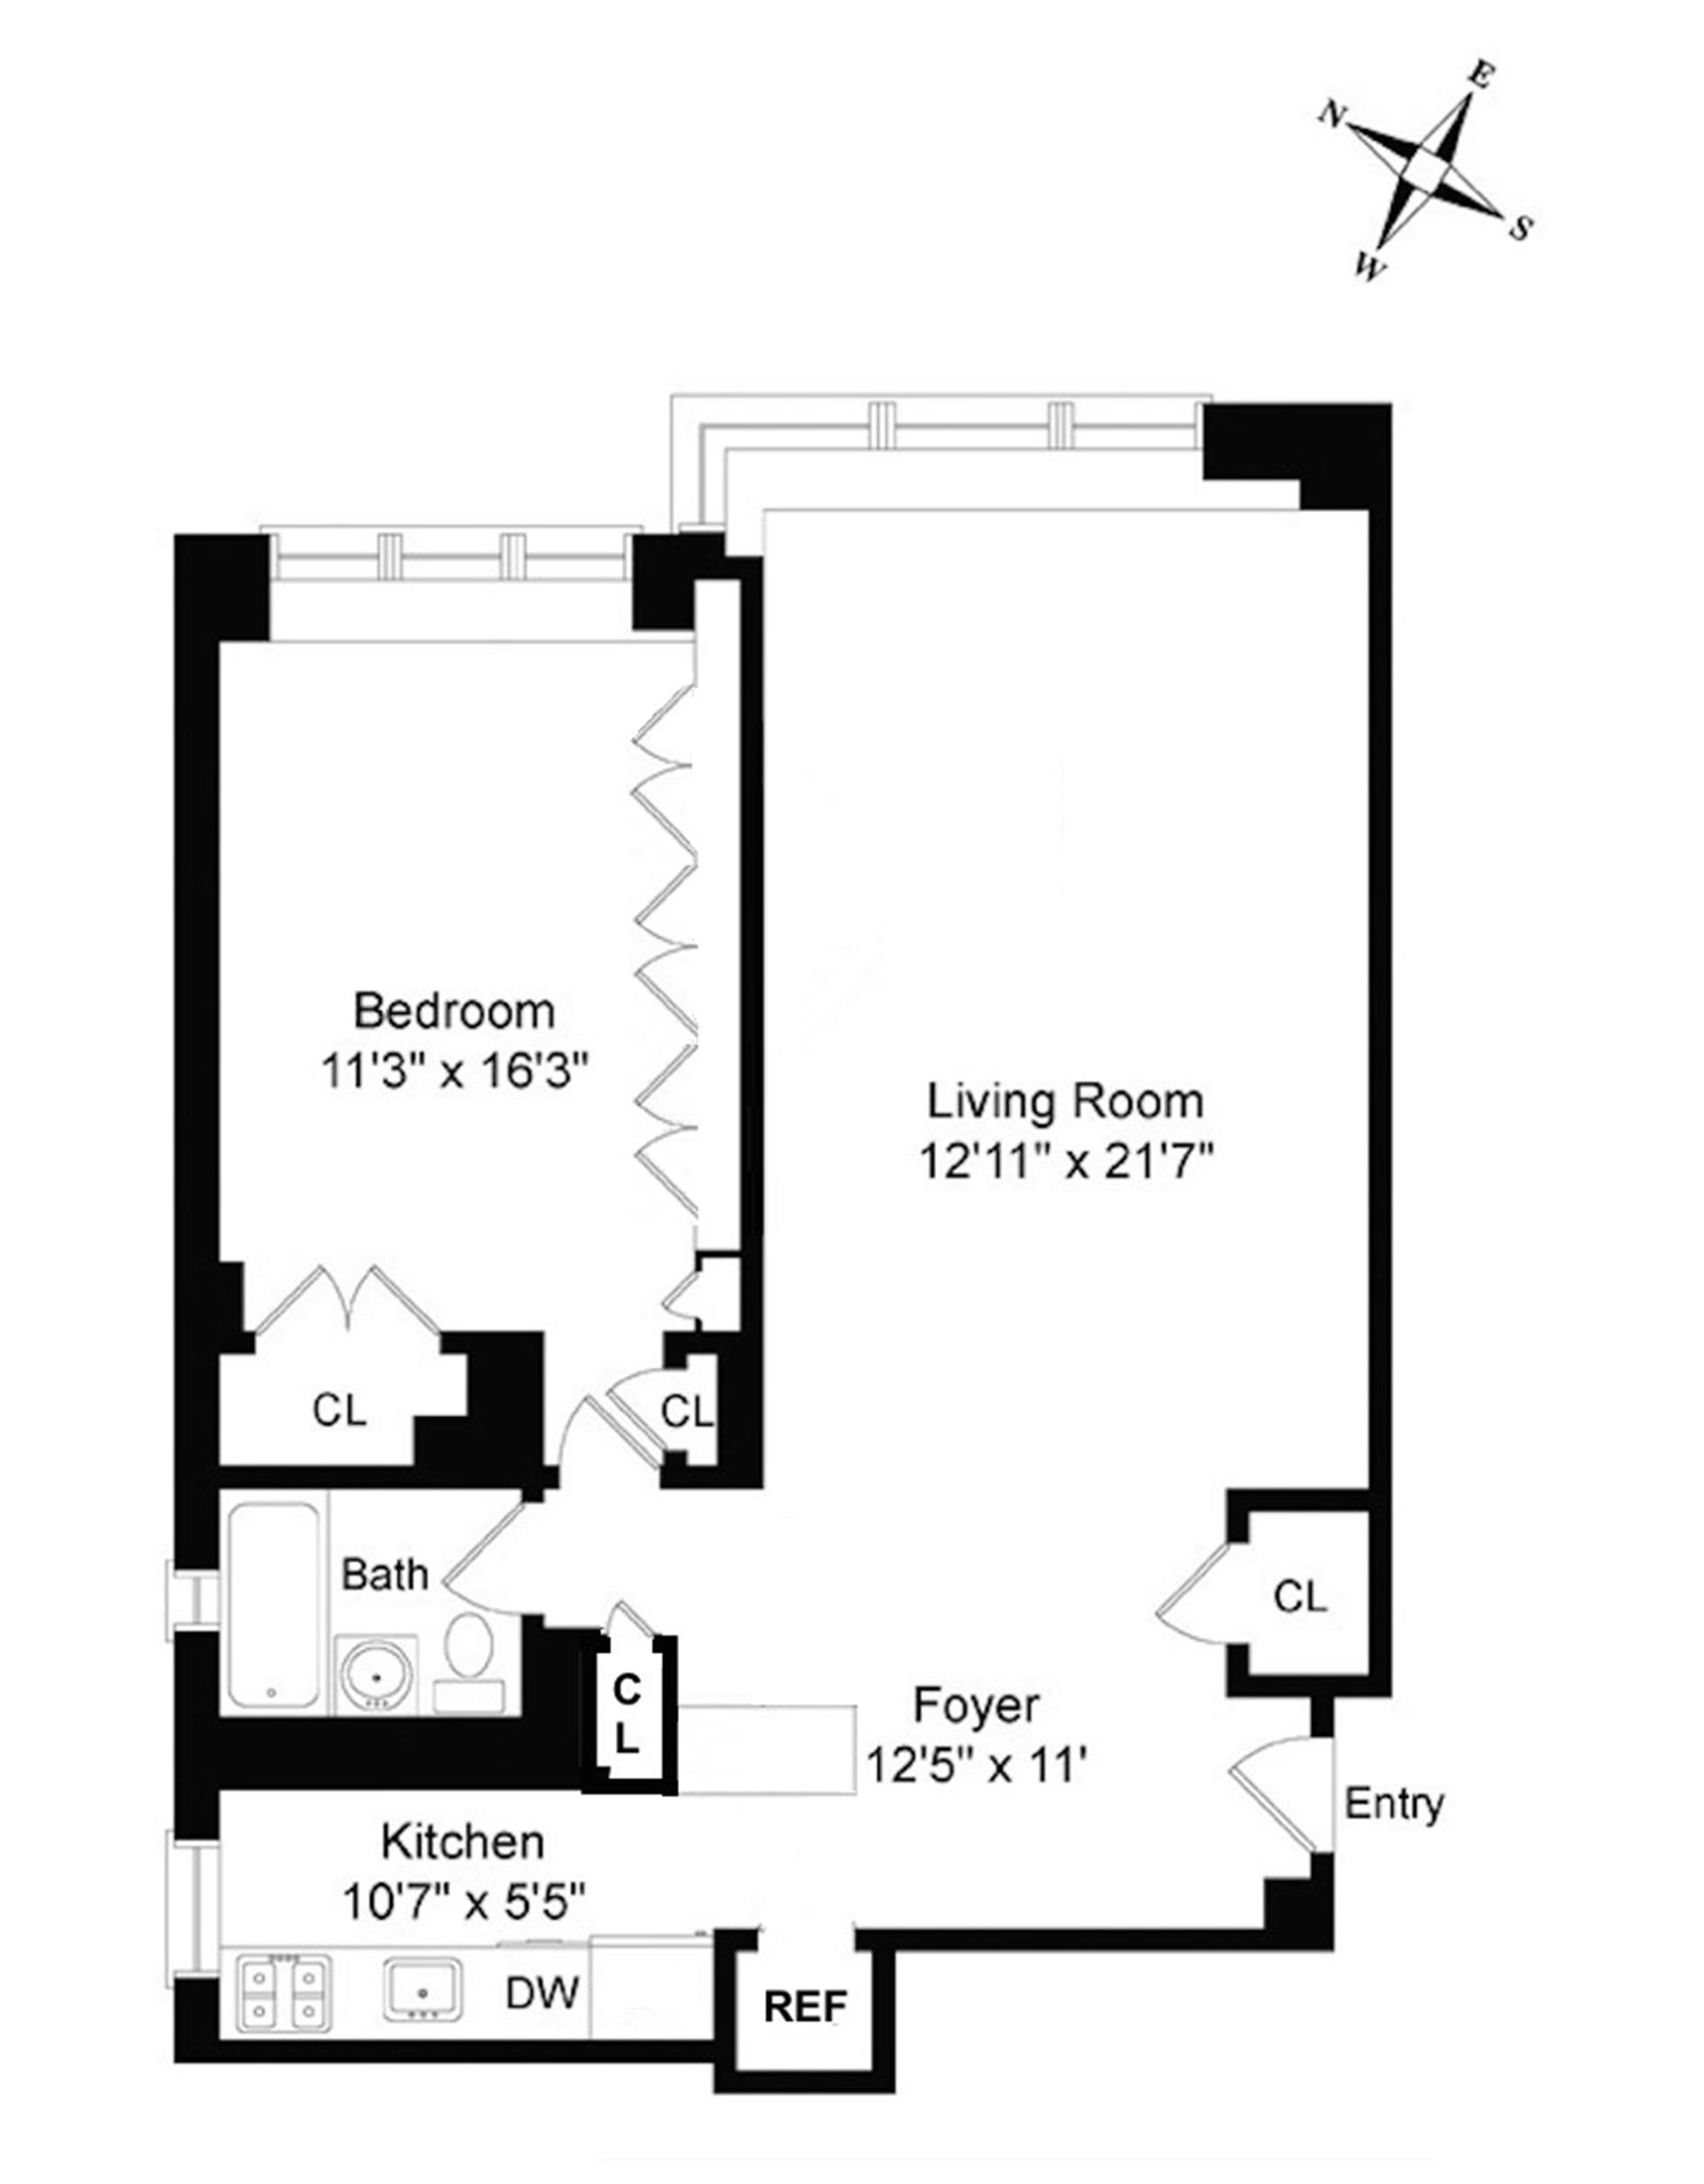 Floor plan of 405 East 63rd St, 5L - Upper East Side, New York